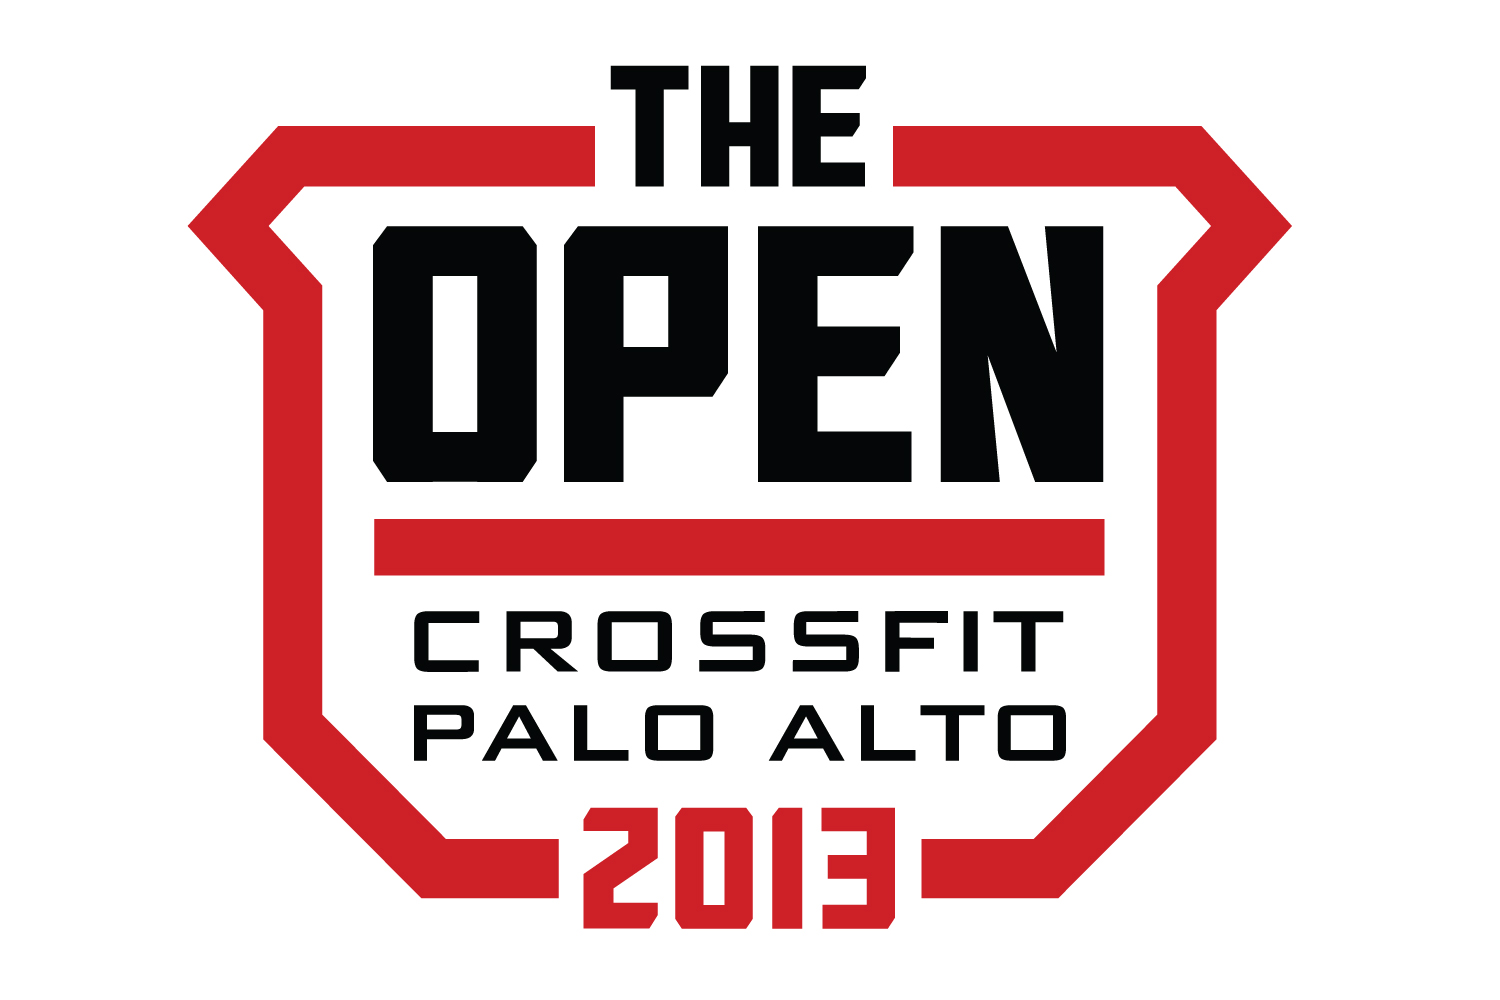 The 2013 CrossFit Open at CrossFit Palo Alto